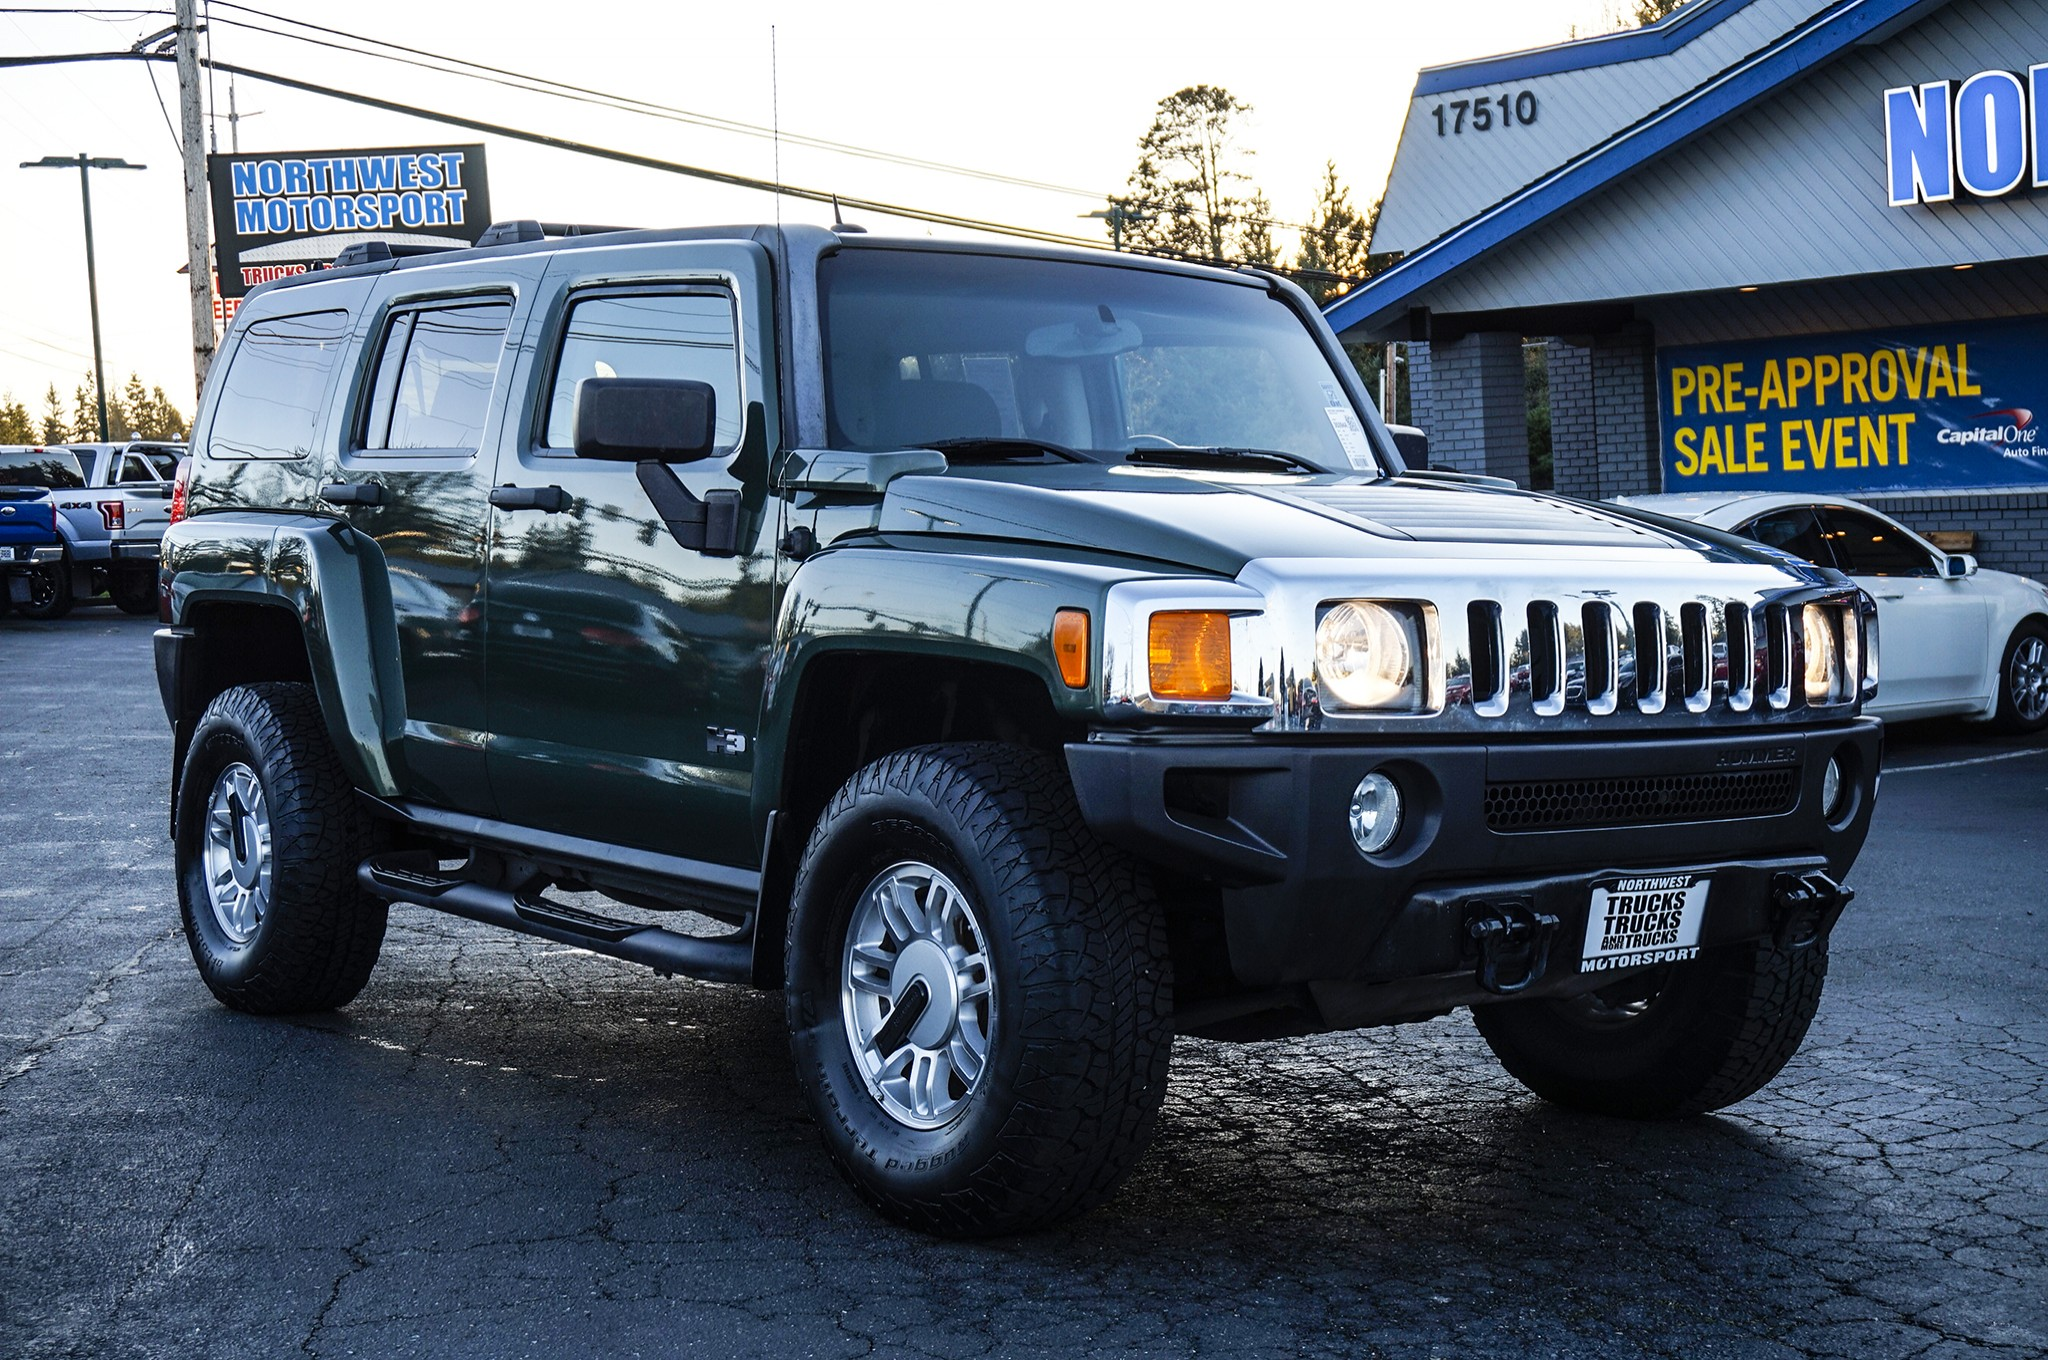 2006 Hummer H3 Blue Gallery Cars Wallpaper Free